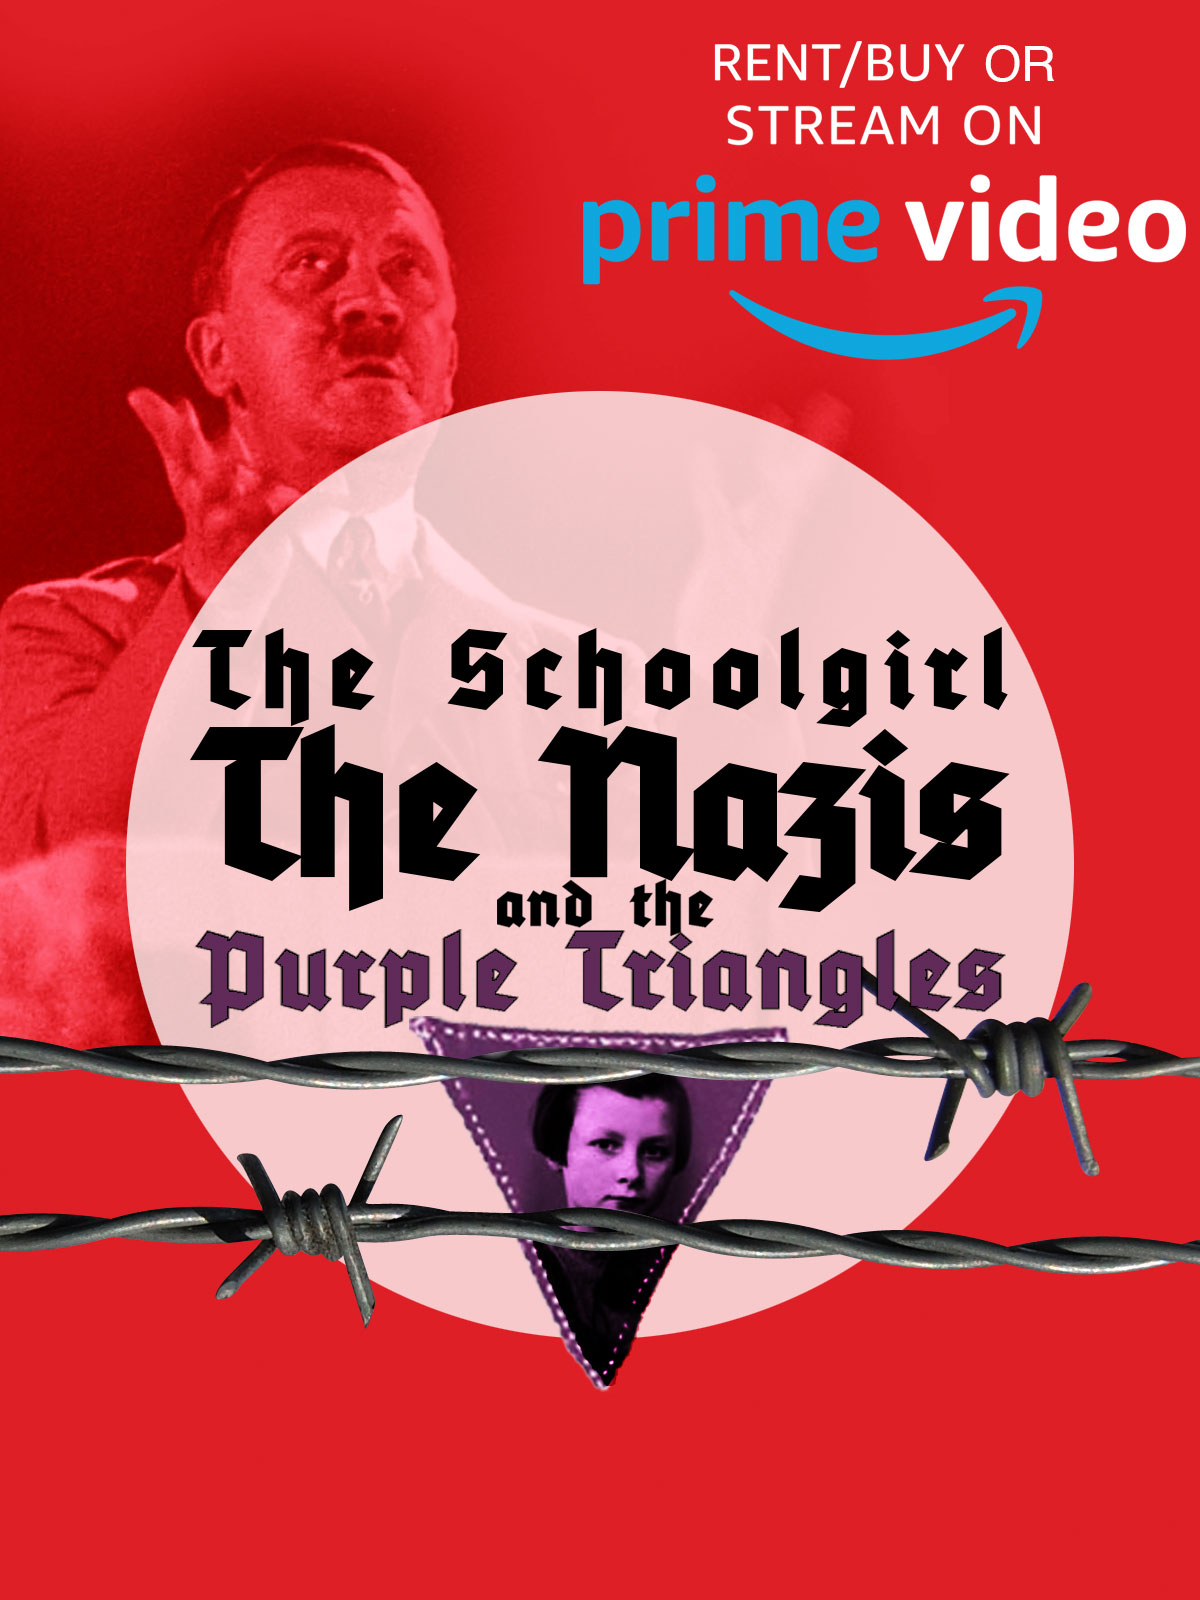 Stream on Prime Video USA - The Schoolgirl The Nazis And The Purple Triangles